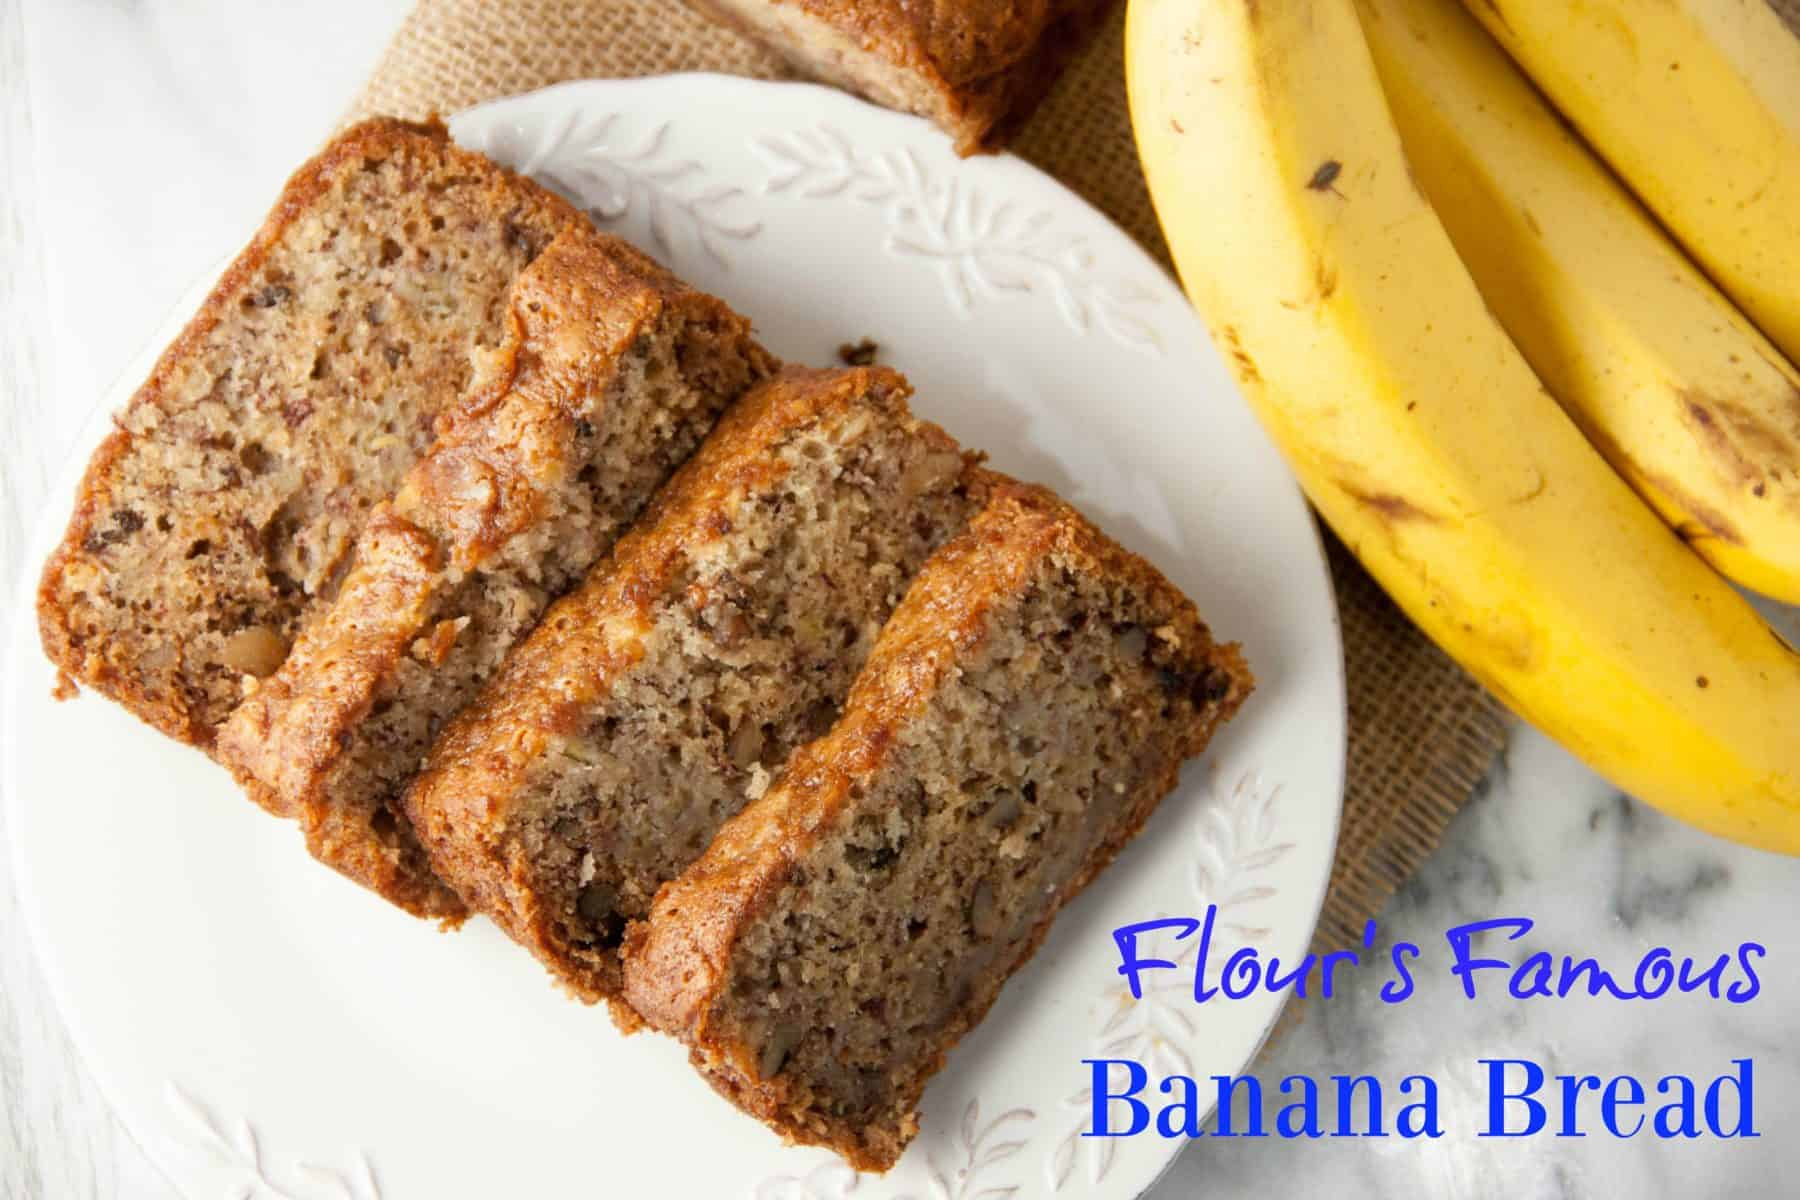 Flours famous banana bread boston girl bakes when it comes to banana bread there is only one recipe i have come across that beats all flour bakerys famous banana bread i had made a version of this forumfinder Choice Image